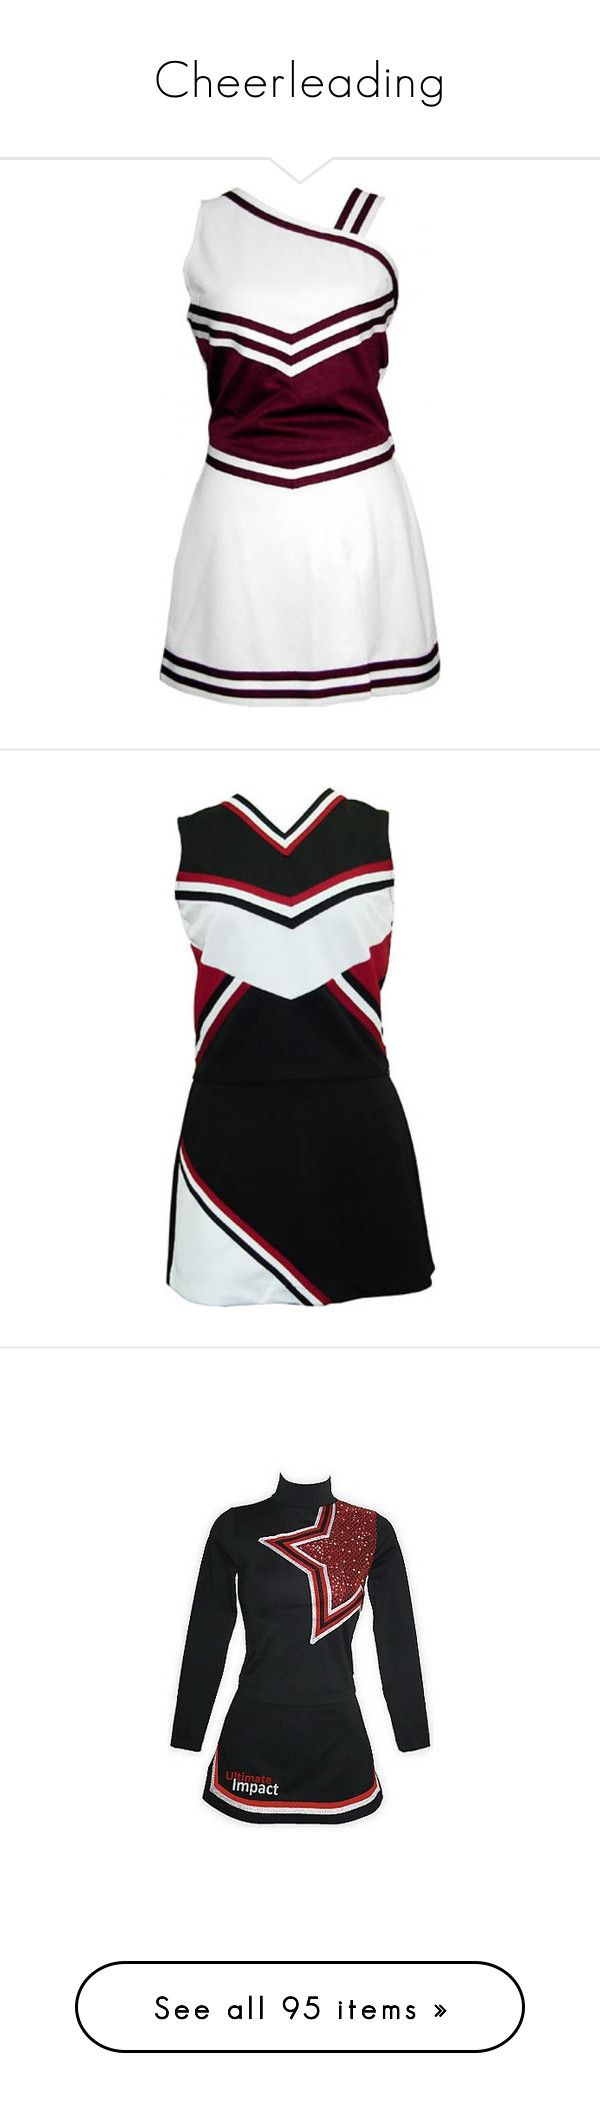 """""""Cheerleading"""" by thelilfujoshi on Polyvore featuring cheerleading, dresses, cheer, sports, uniform, cheerleading uniforms, cheerleader, tops, blue striped top e knit top"""